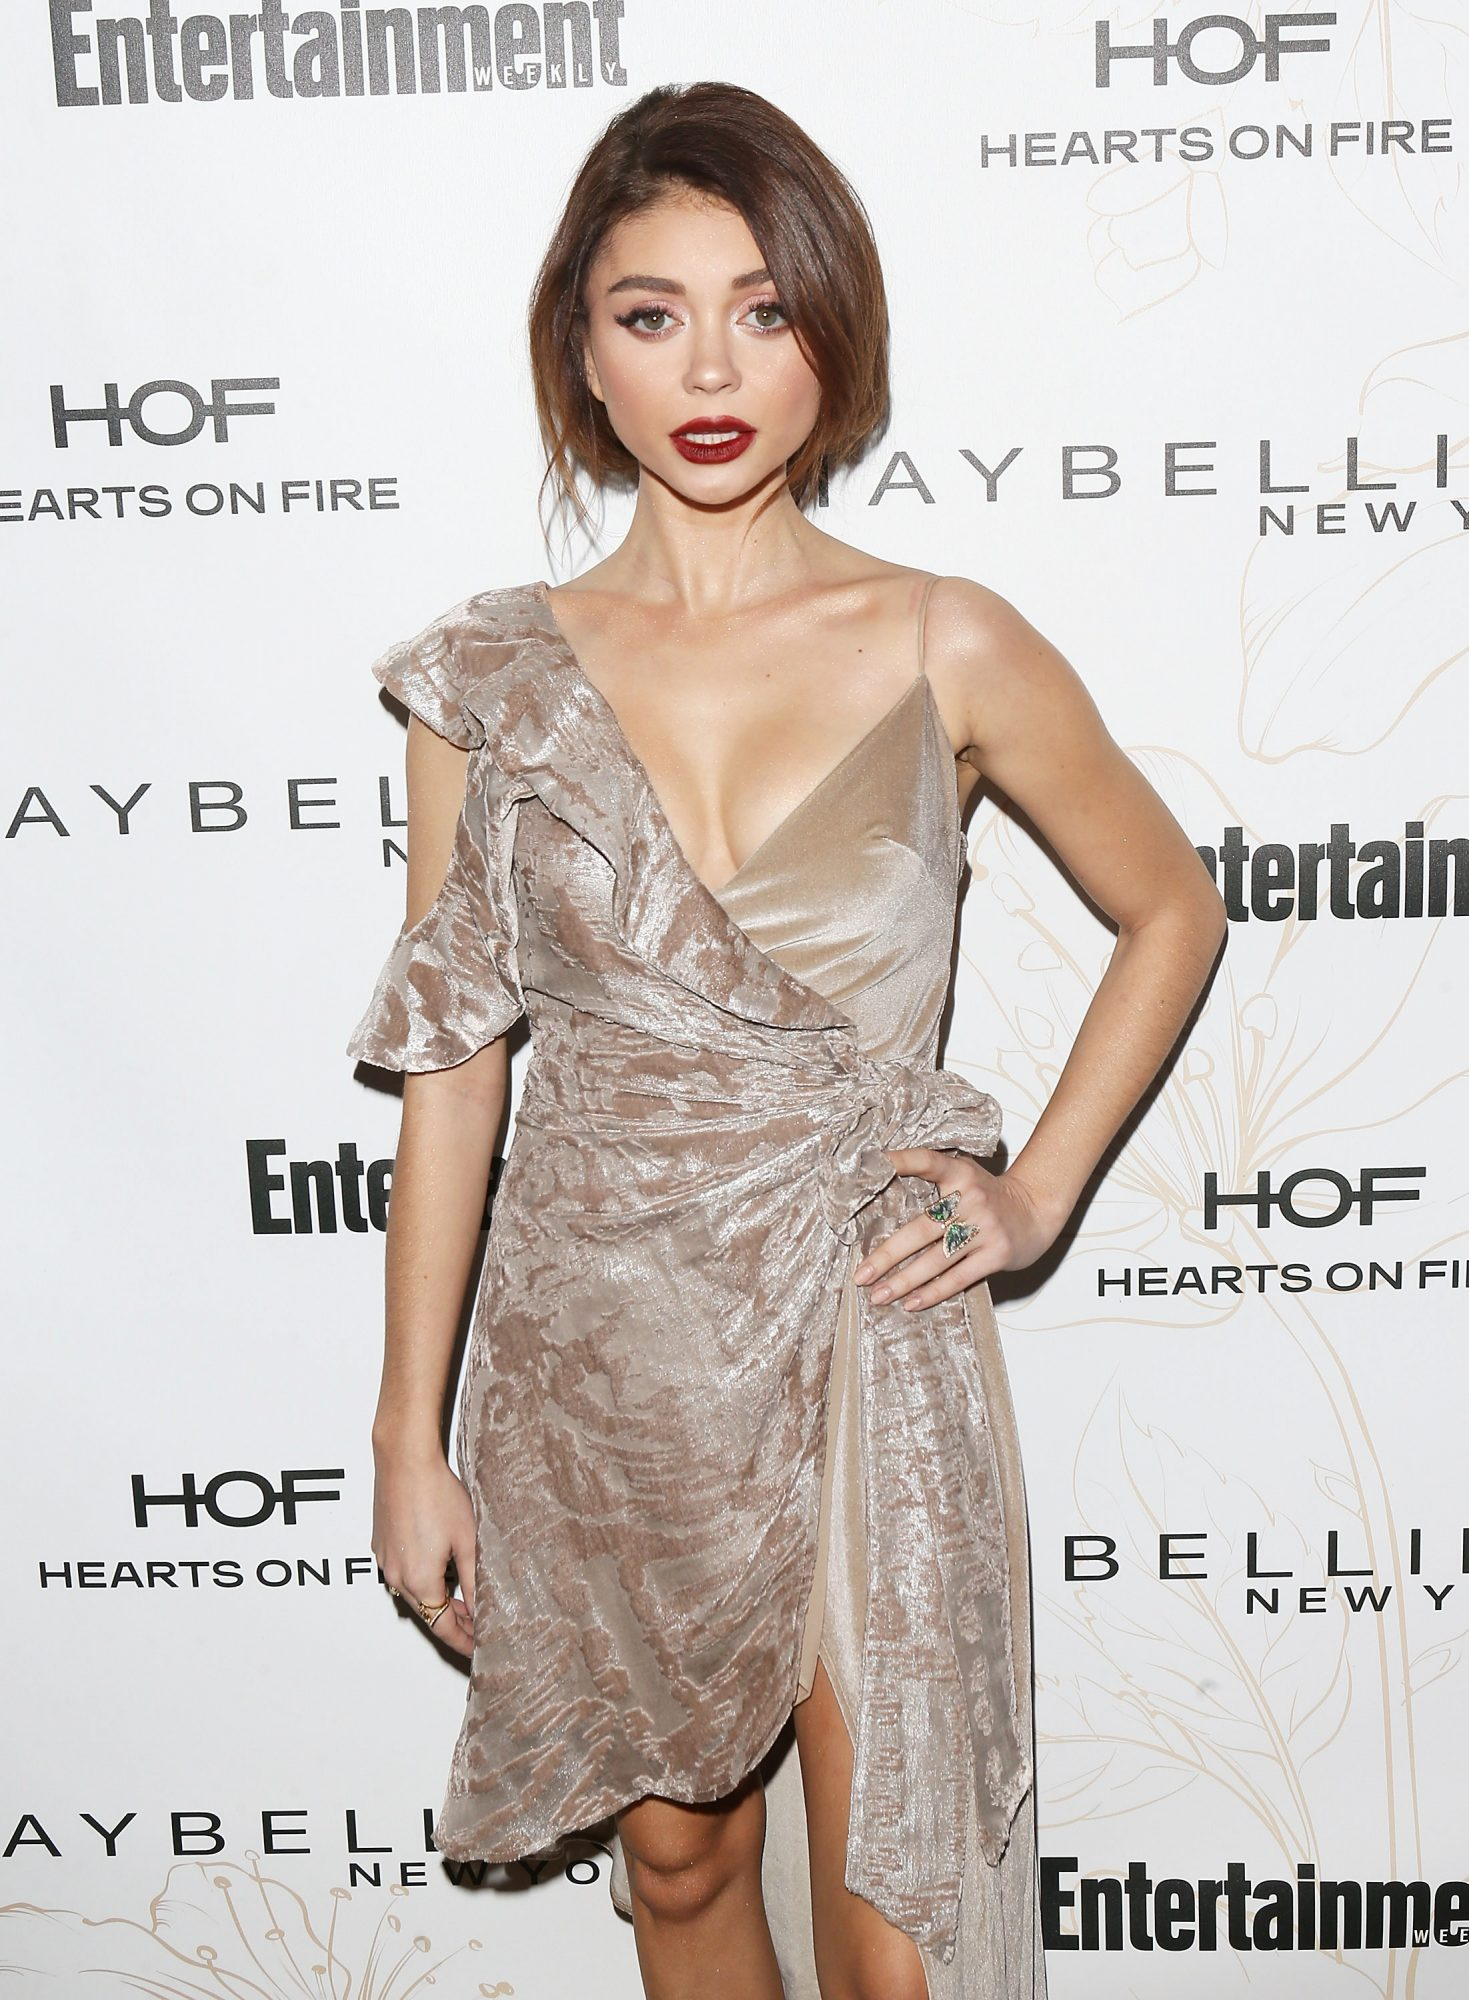 Modern Family's Sarah Hyland Is Frustrated with 'Doctors Not Listening' to Her Health Struggles